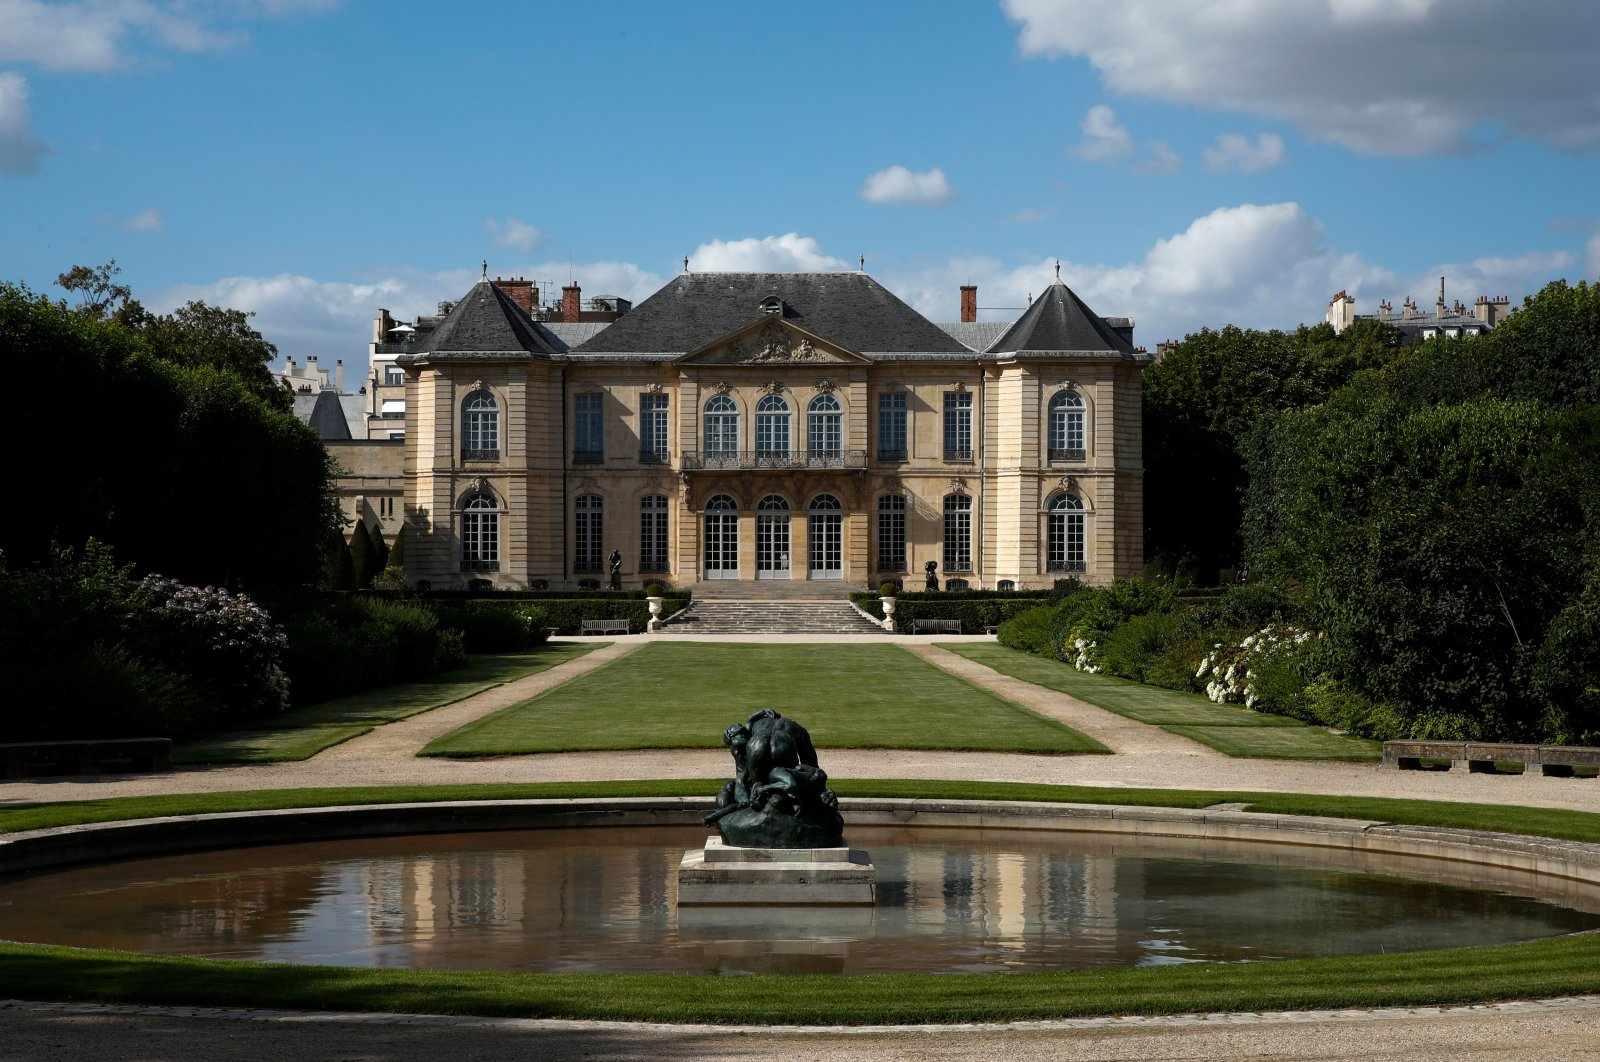 A view shows the Rodin Museum on the eve of its reopening after an almost four-month closure due to the coronavirus outbreak, in Paris, France, July 6, 2020. (Reuters)